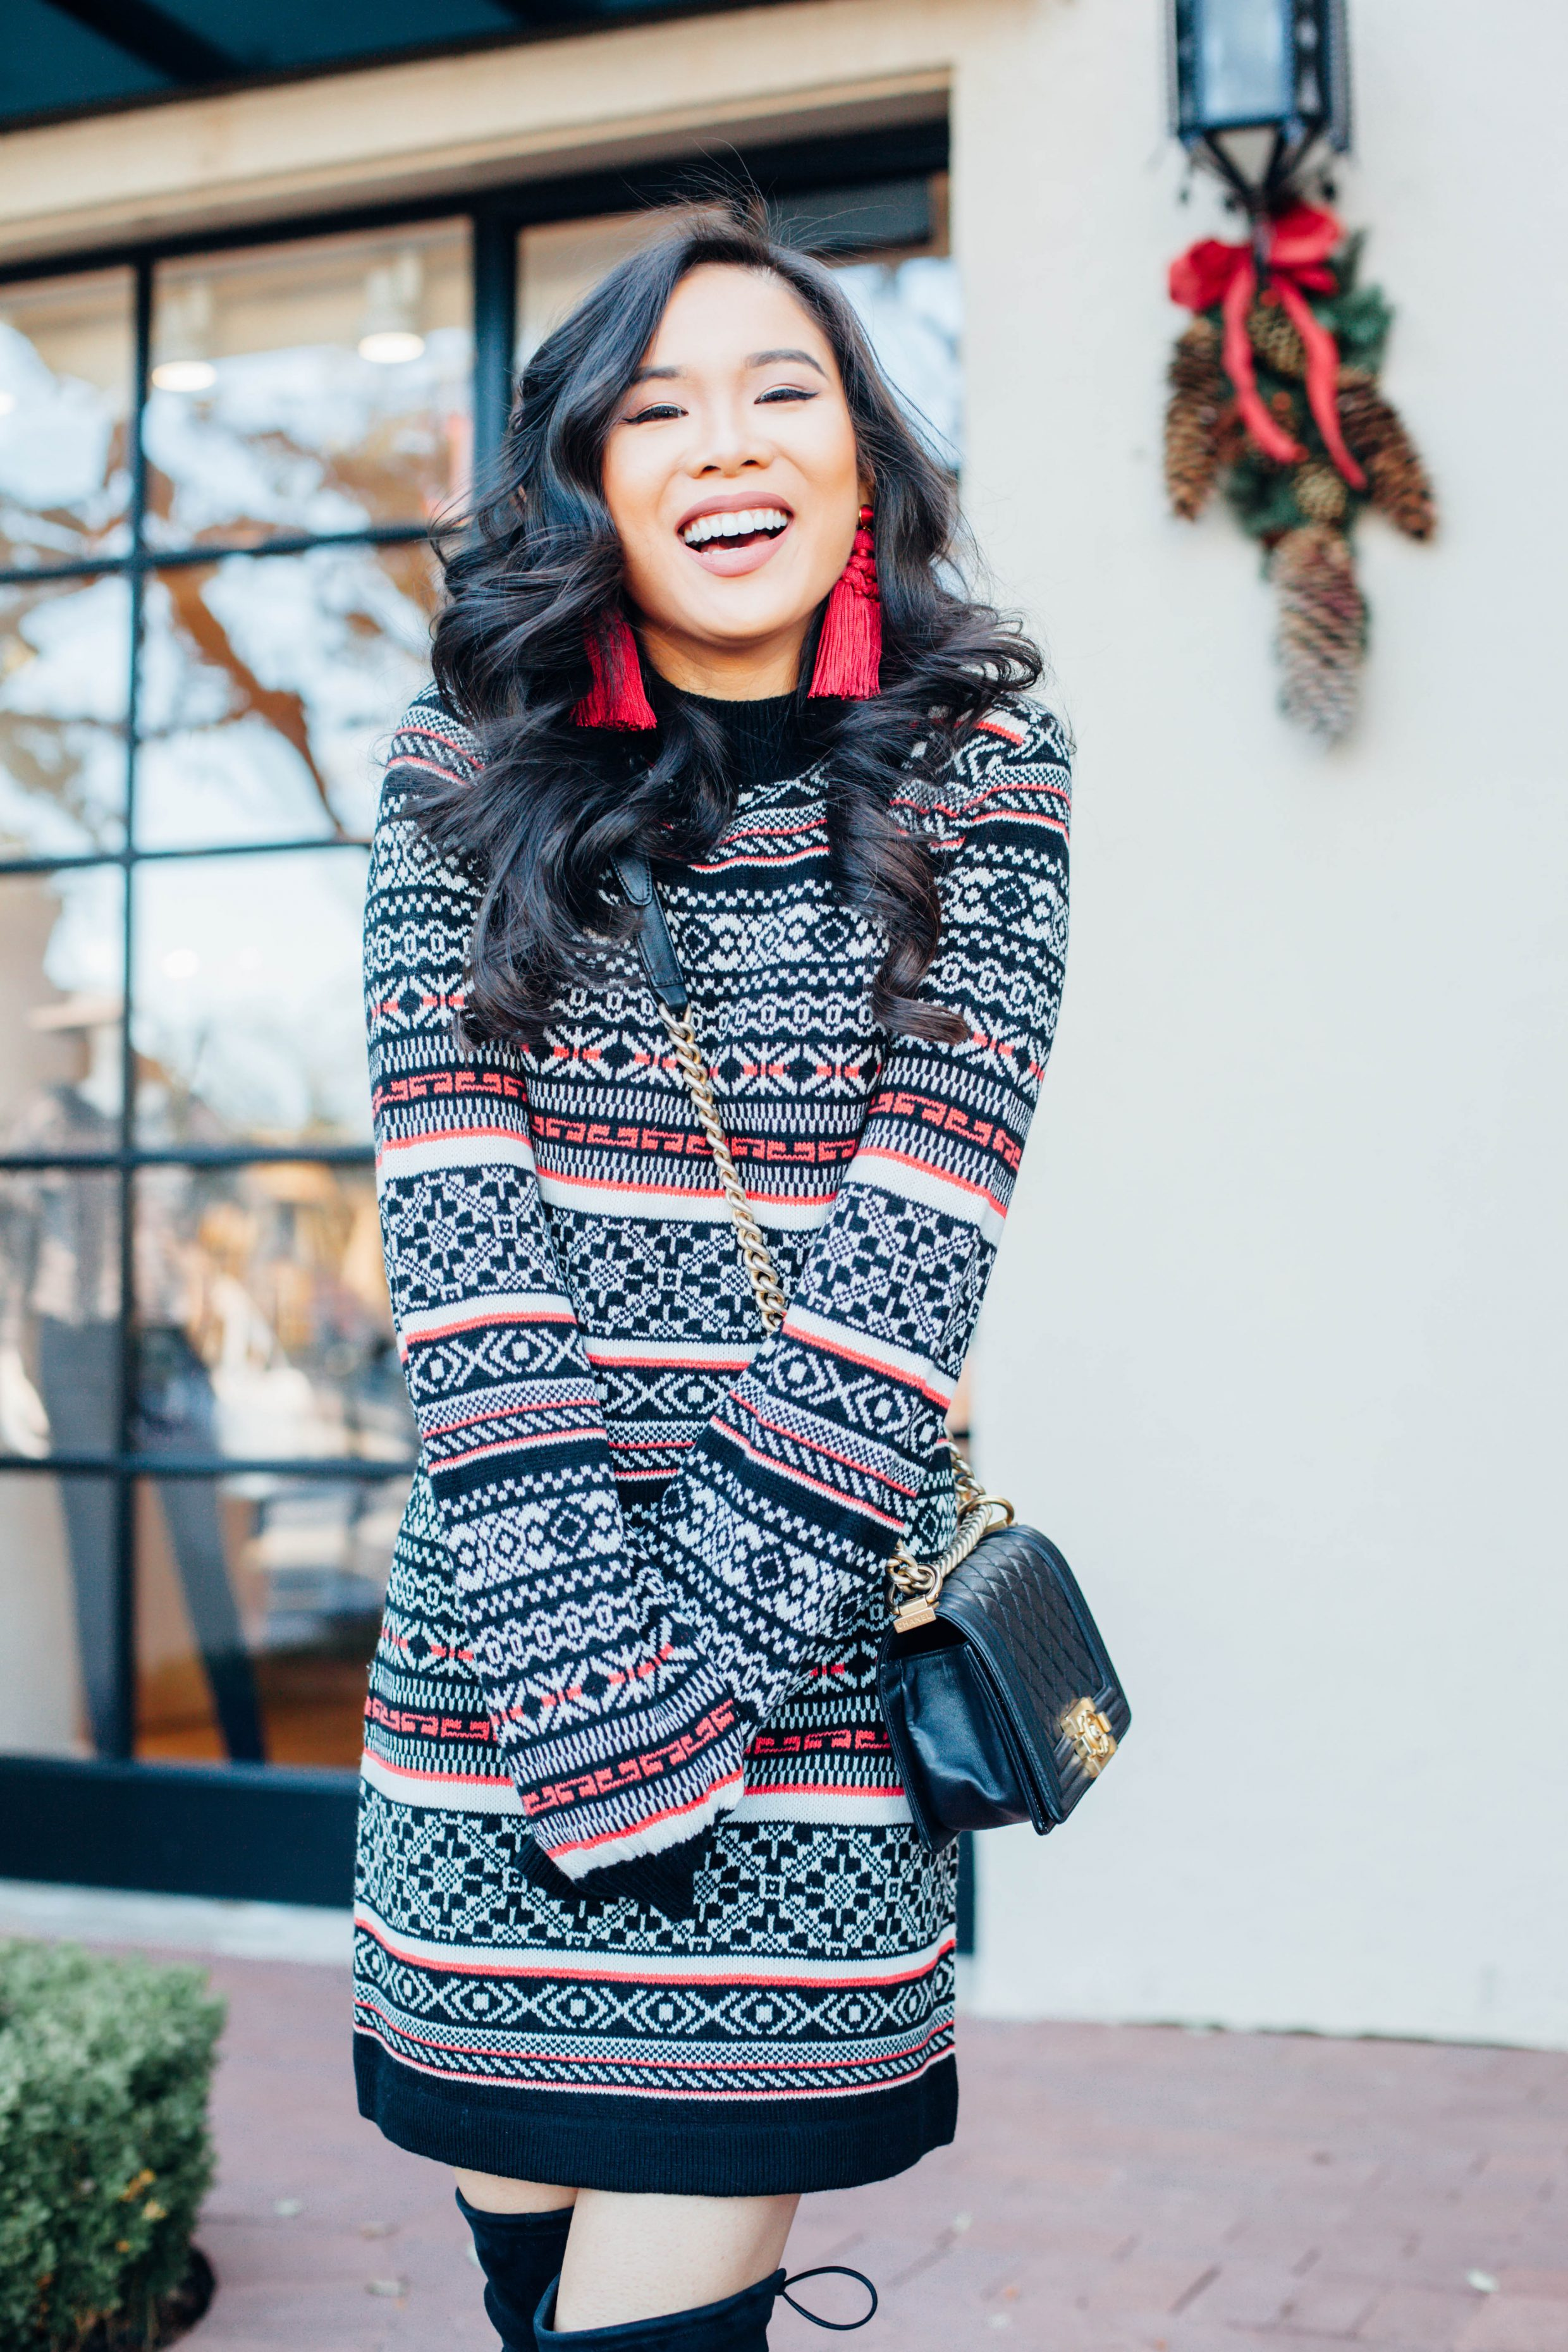 Lipstick Color Is Red Cold Kickoff Fair Isle Sweater Dress Color Chic